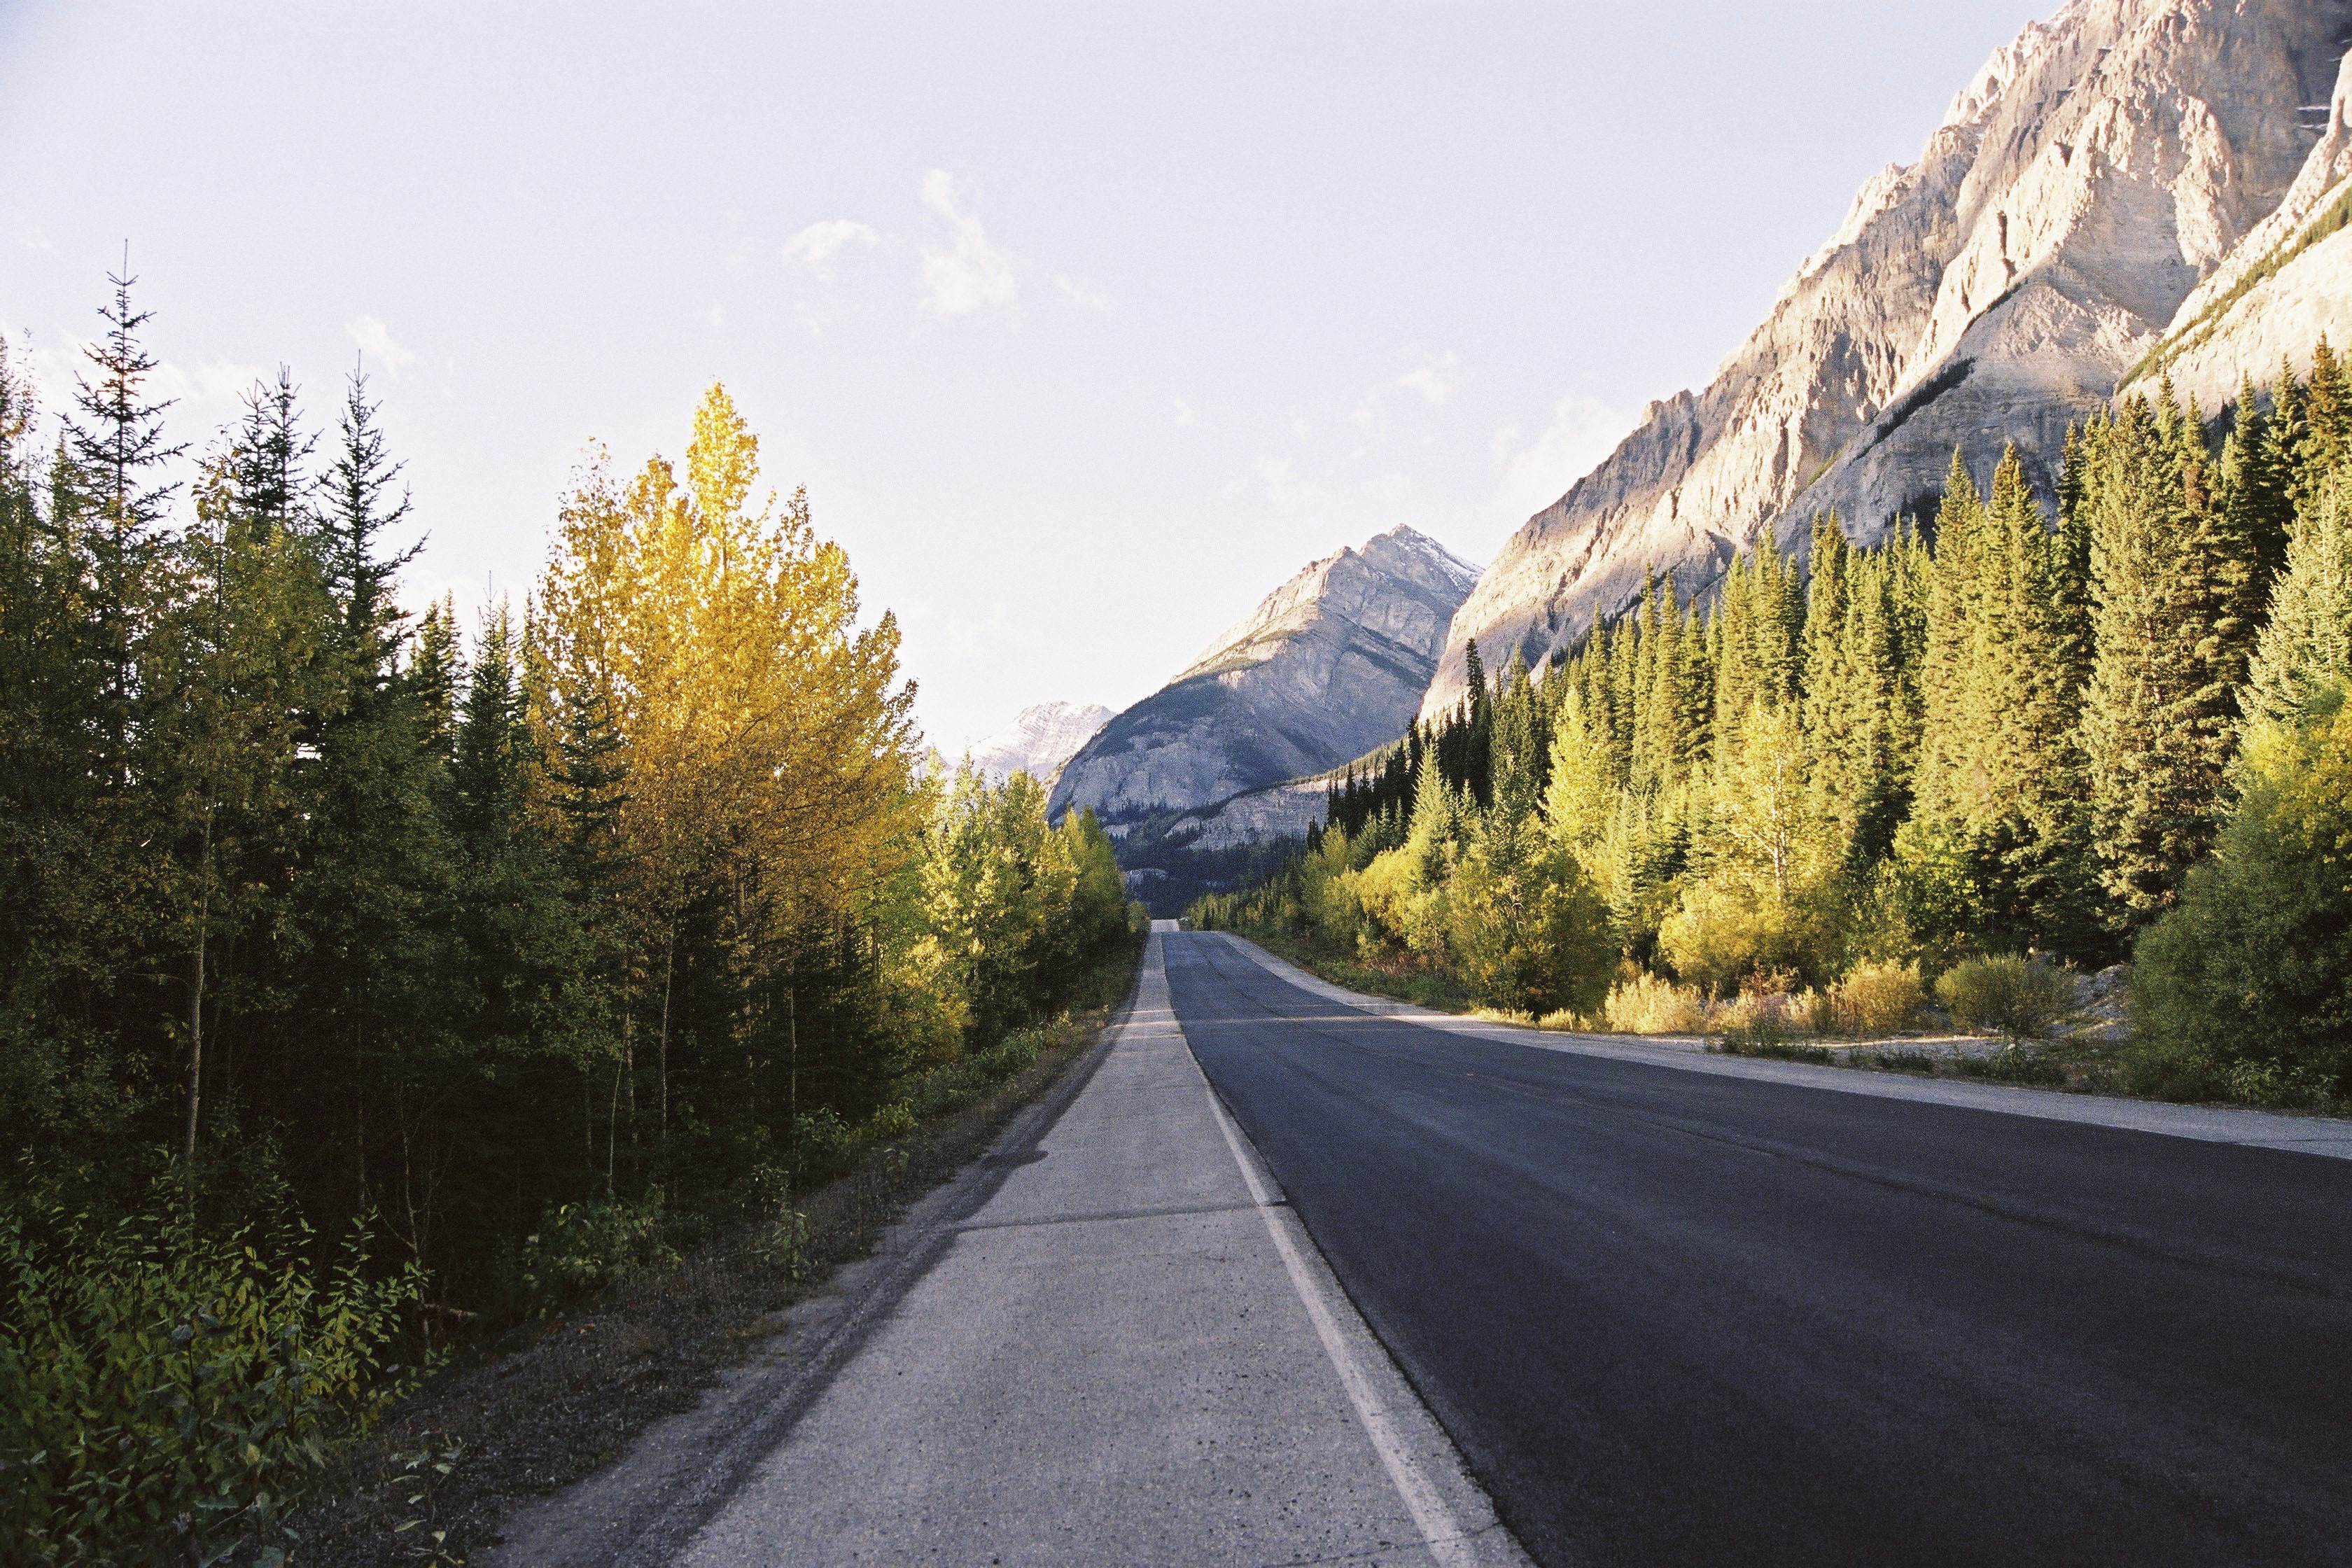 Alberta is paradise for nature lovers